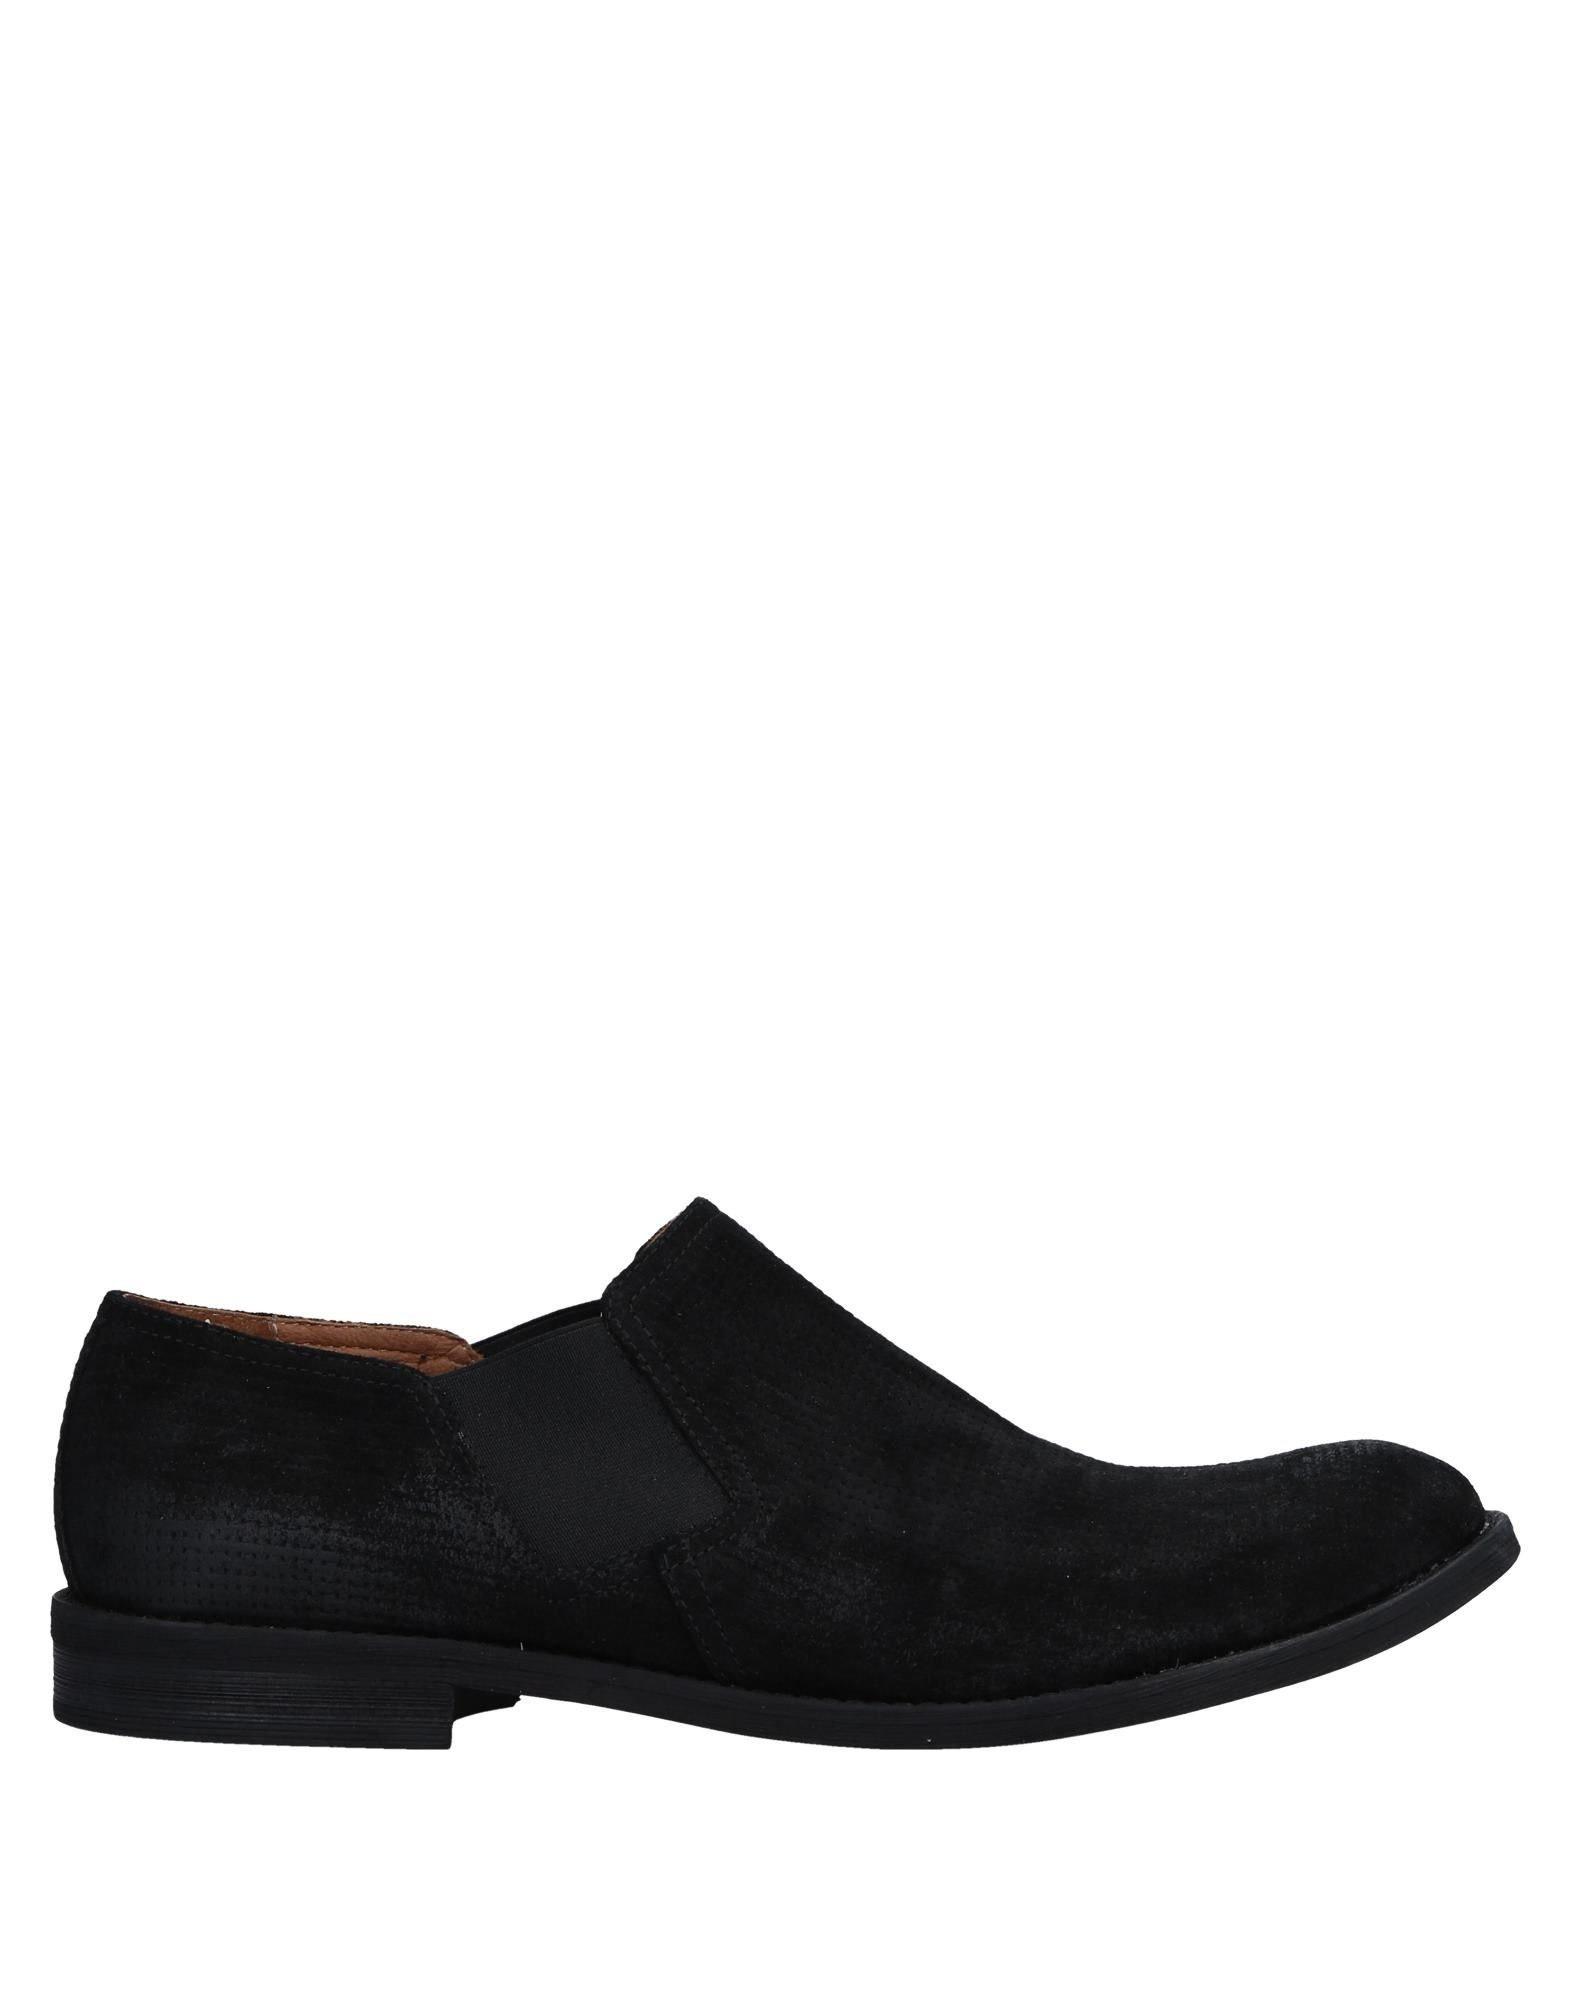 Officina Officina Officina 36 Loafers - Men Officina 36 Loafers online on  United Kingdom - 11540386GP 20fb5a